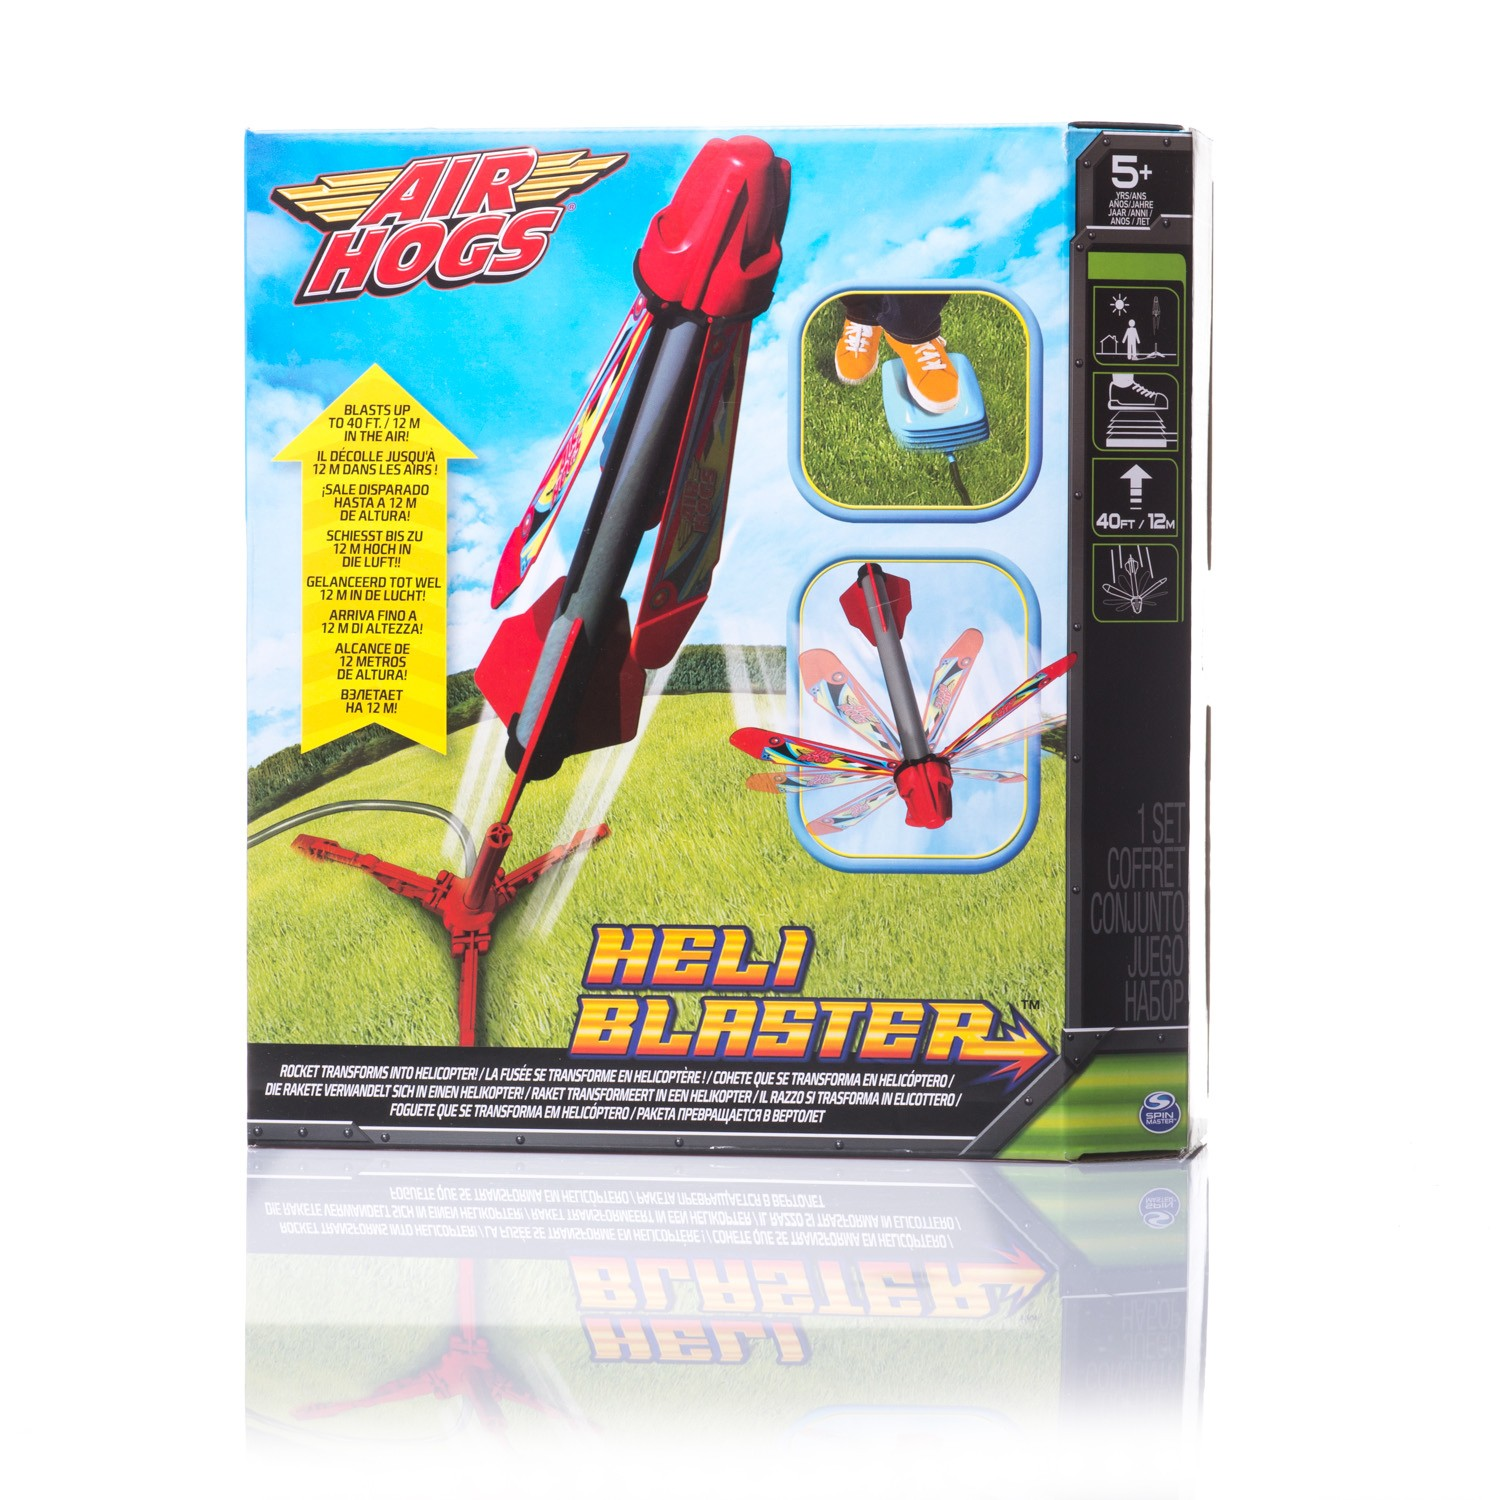 Heli Blaster AIR HOGS